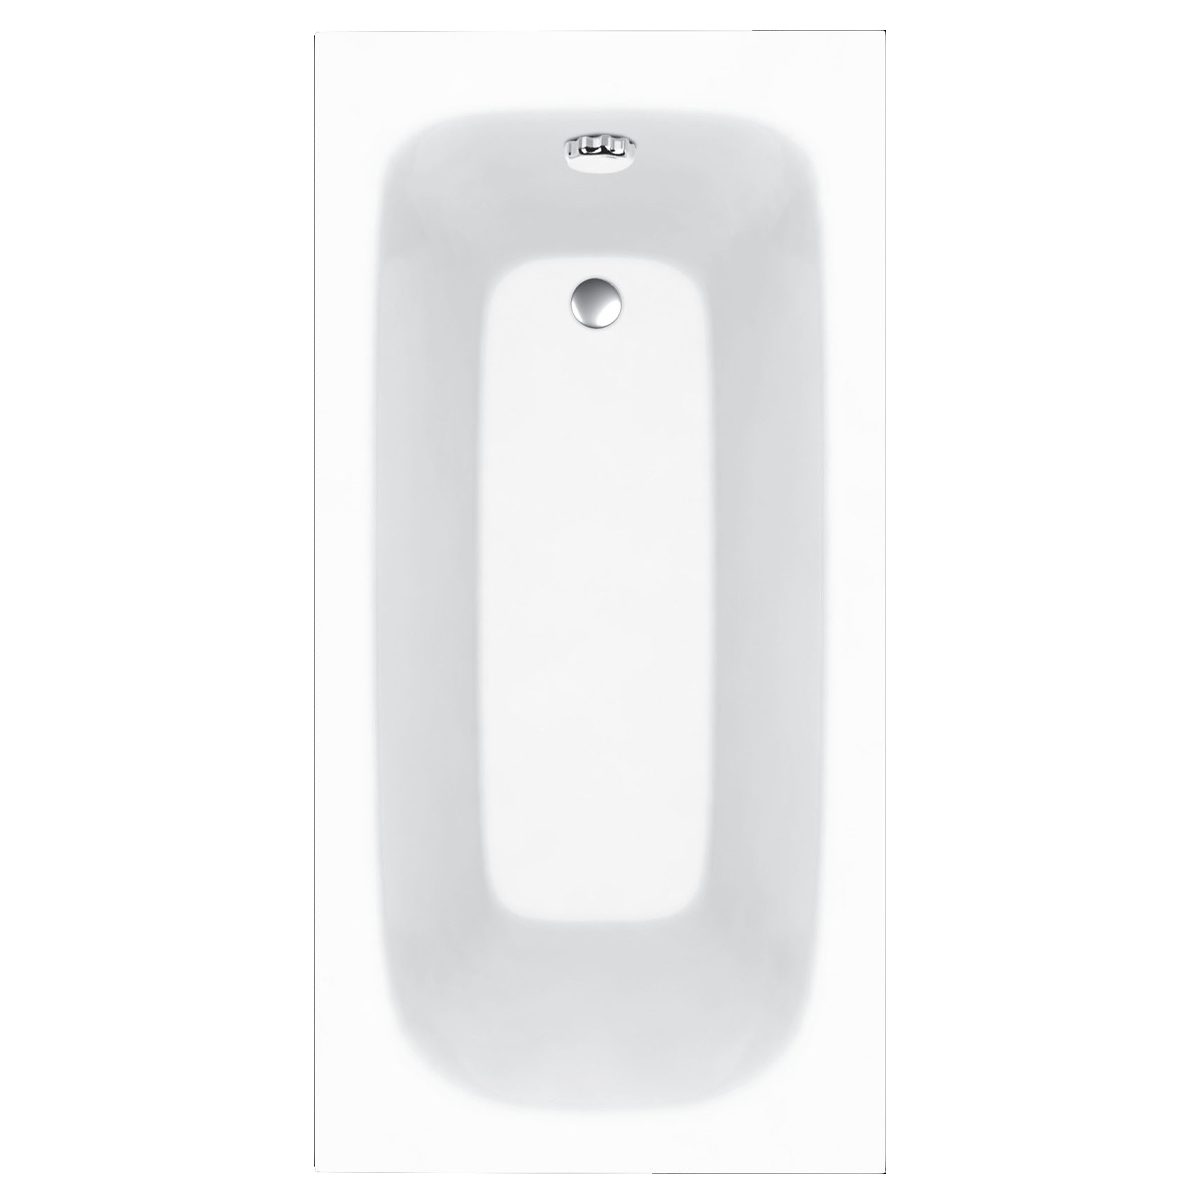 K-Vit G4K 1700 x 700 Contract Bath